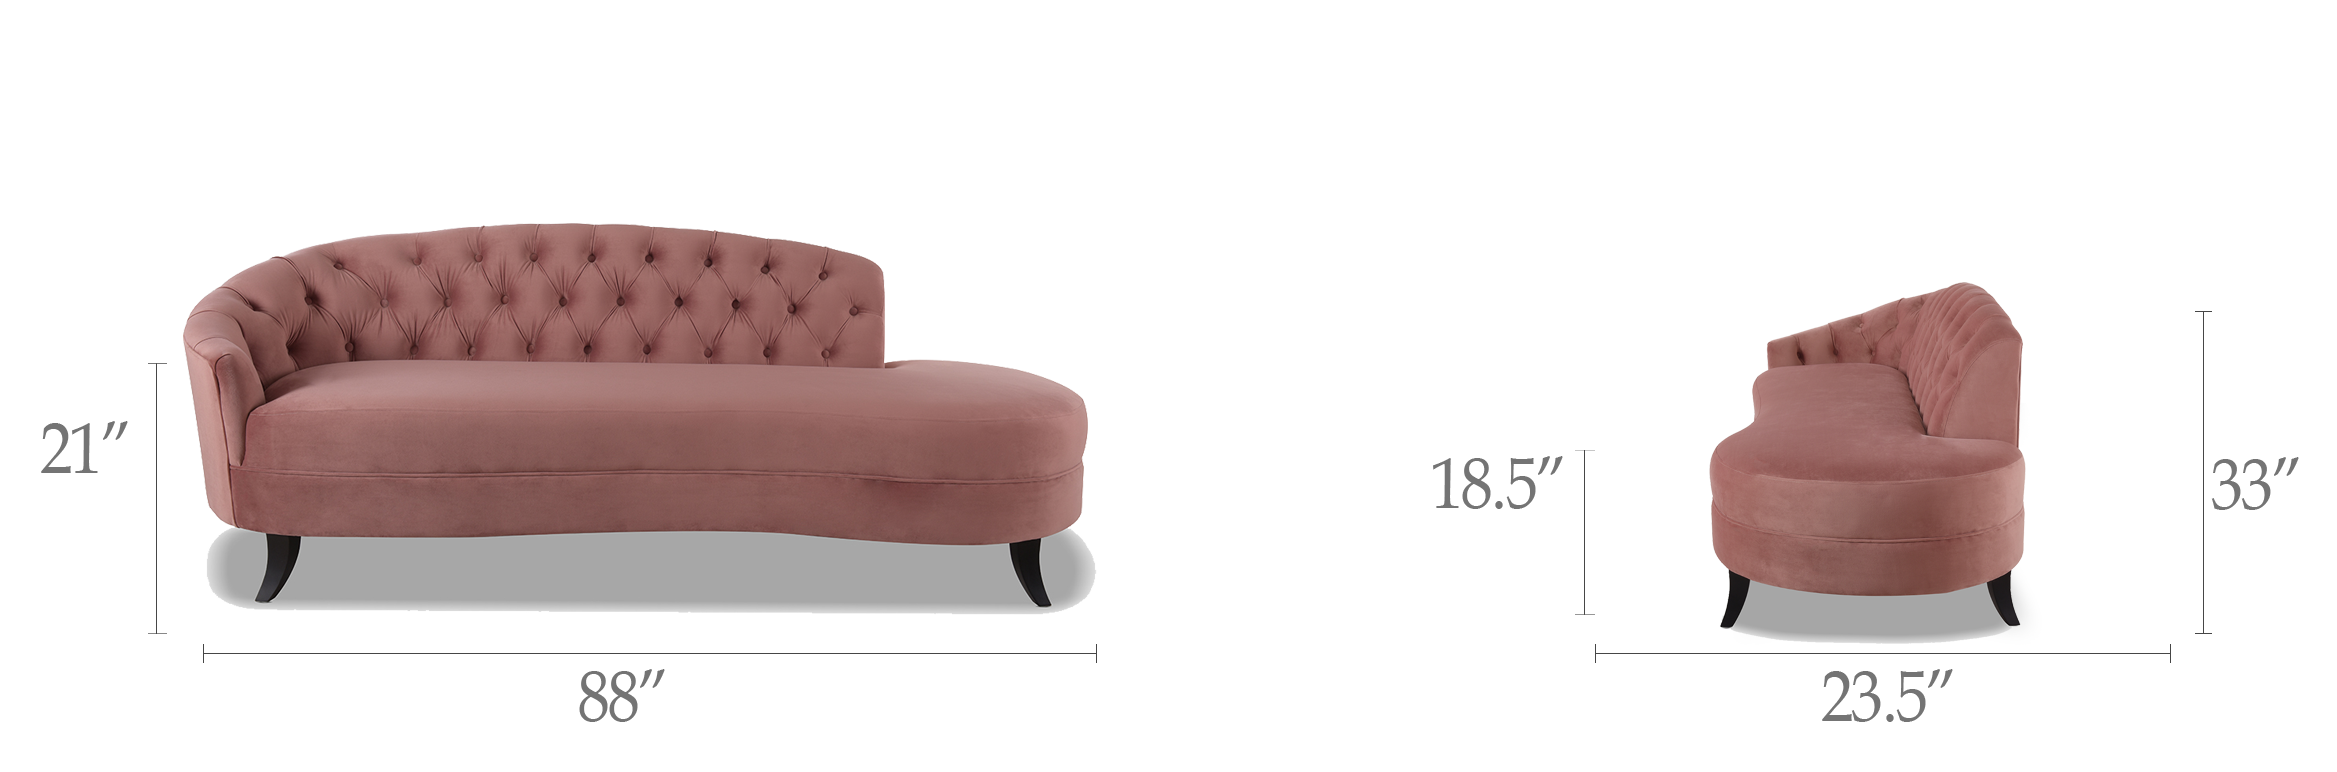 Delaney Chaise Sofa